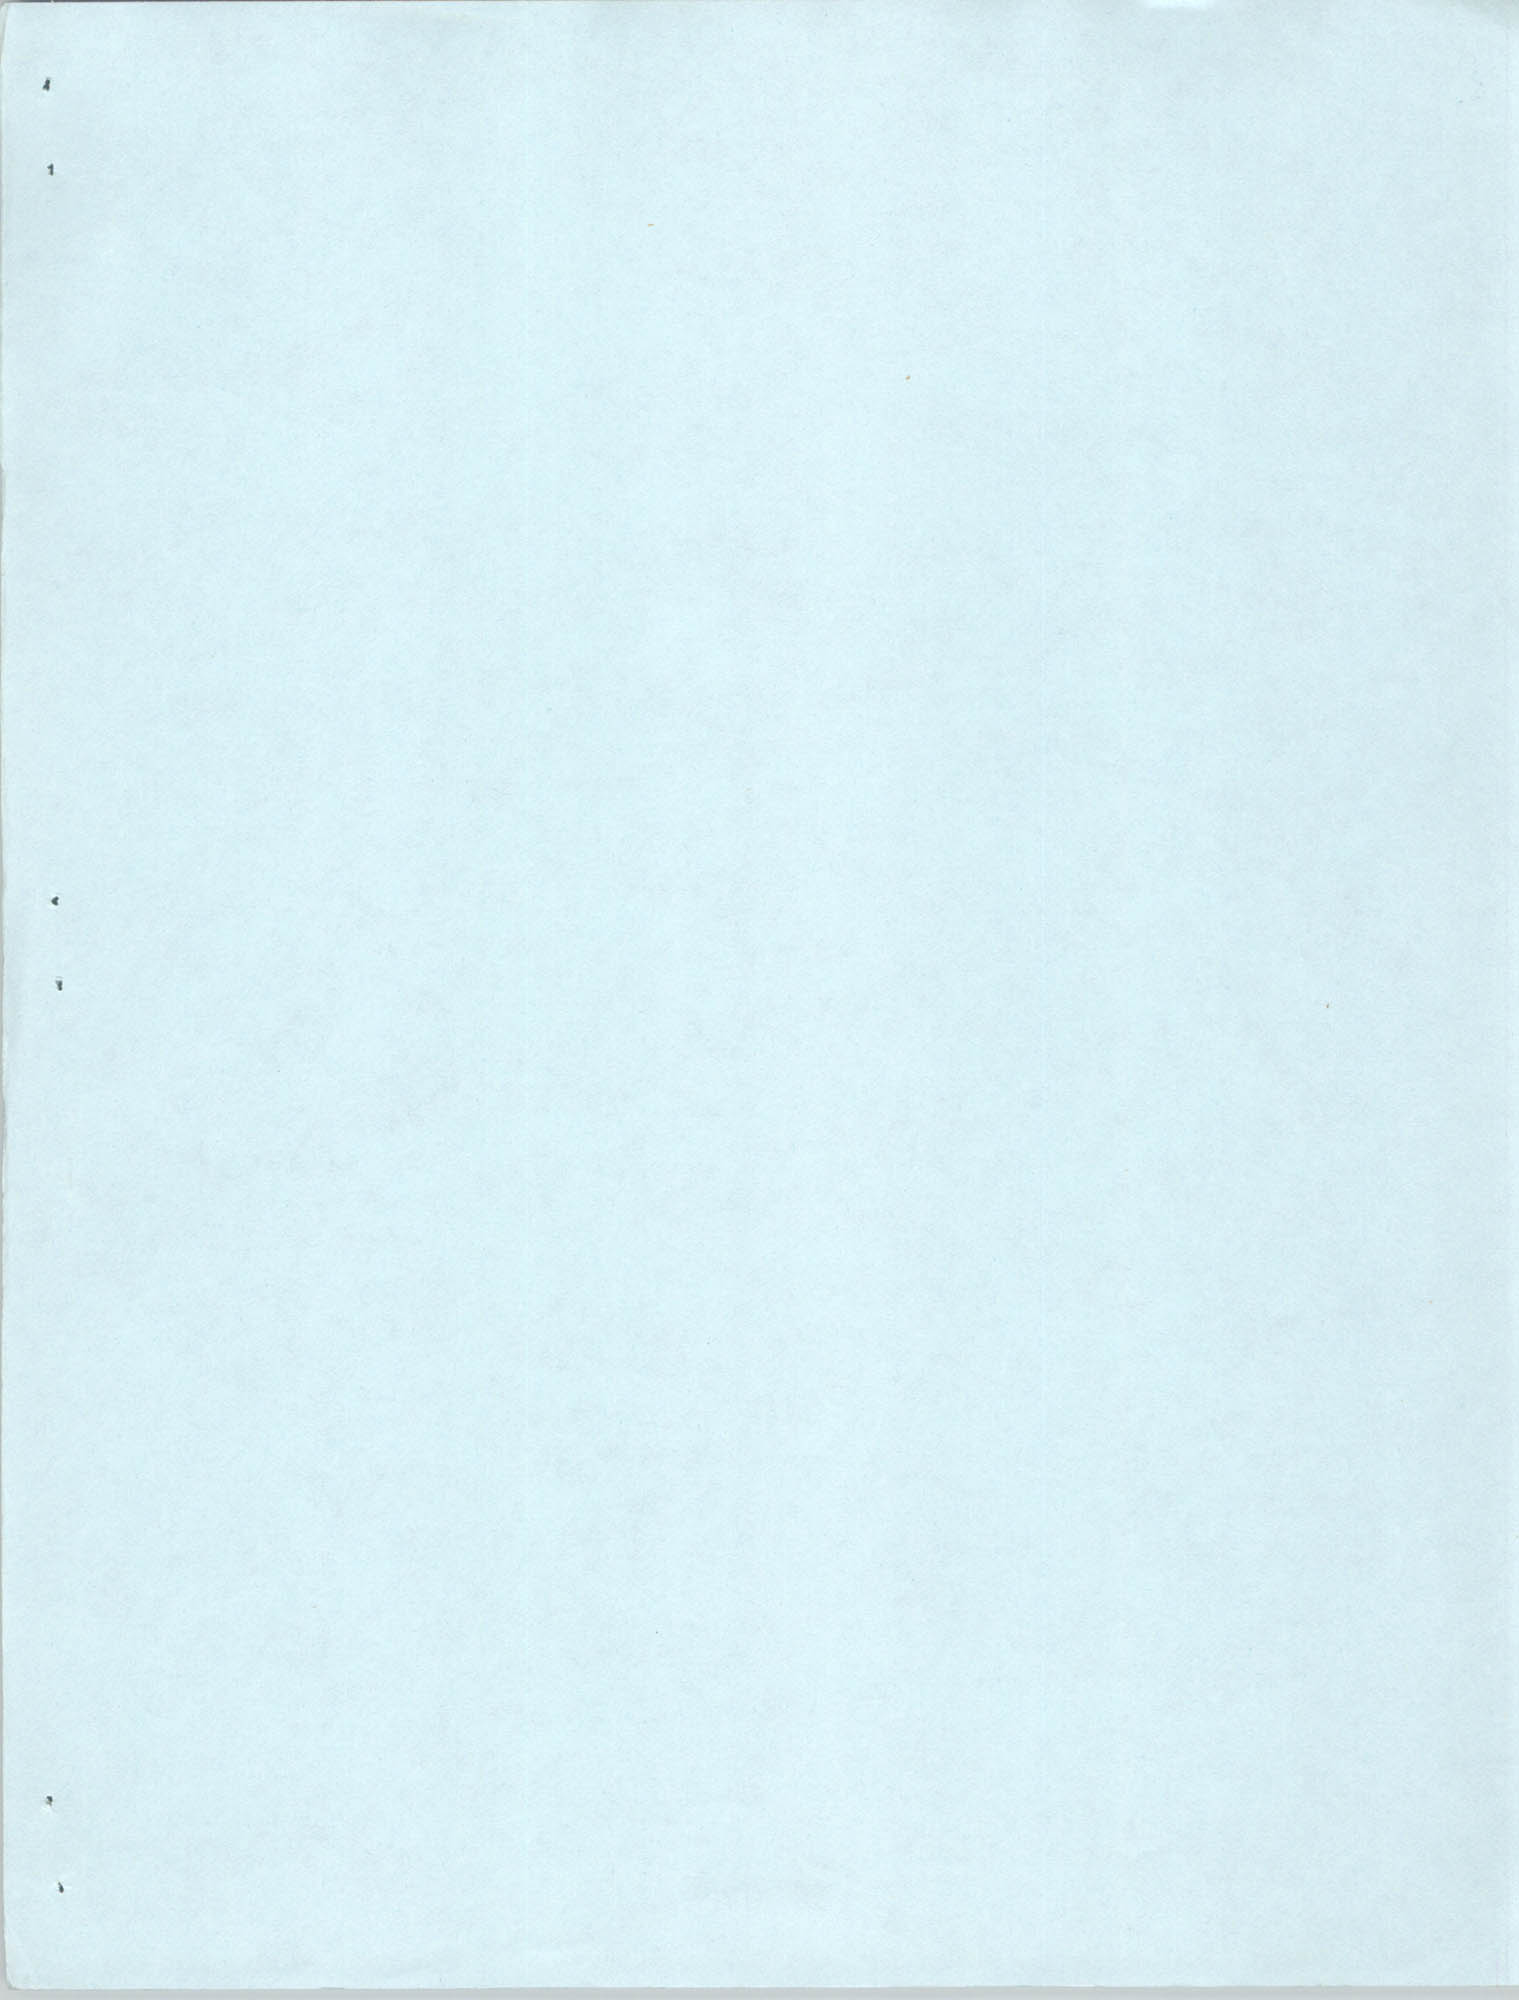 South Carolina Conference of Branches of the NAACP, 1990 Annual Report, Part One, Back Cover